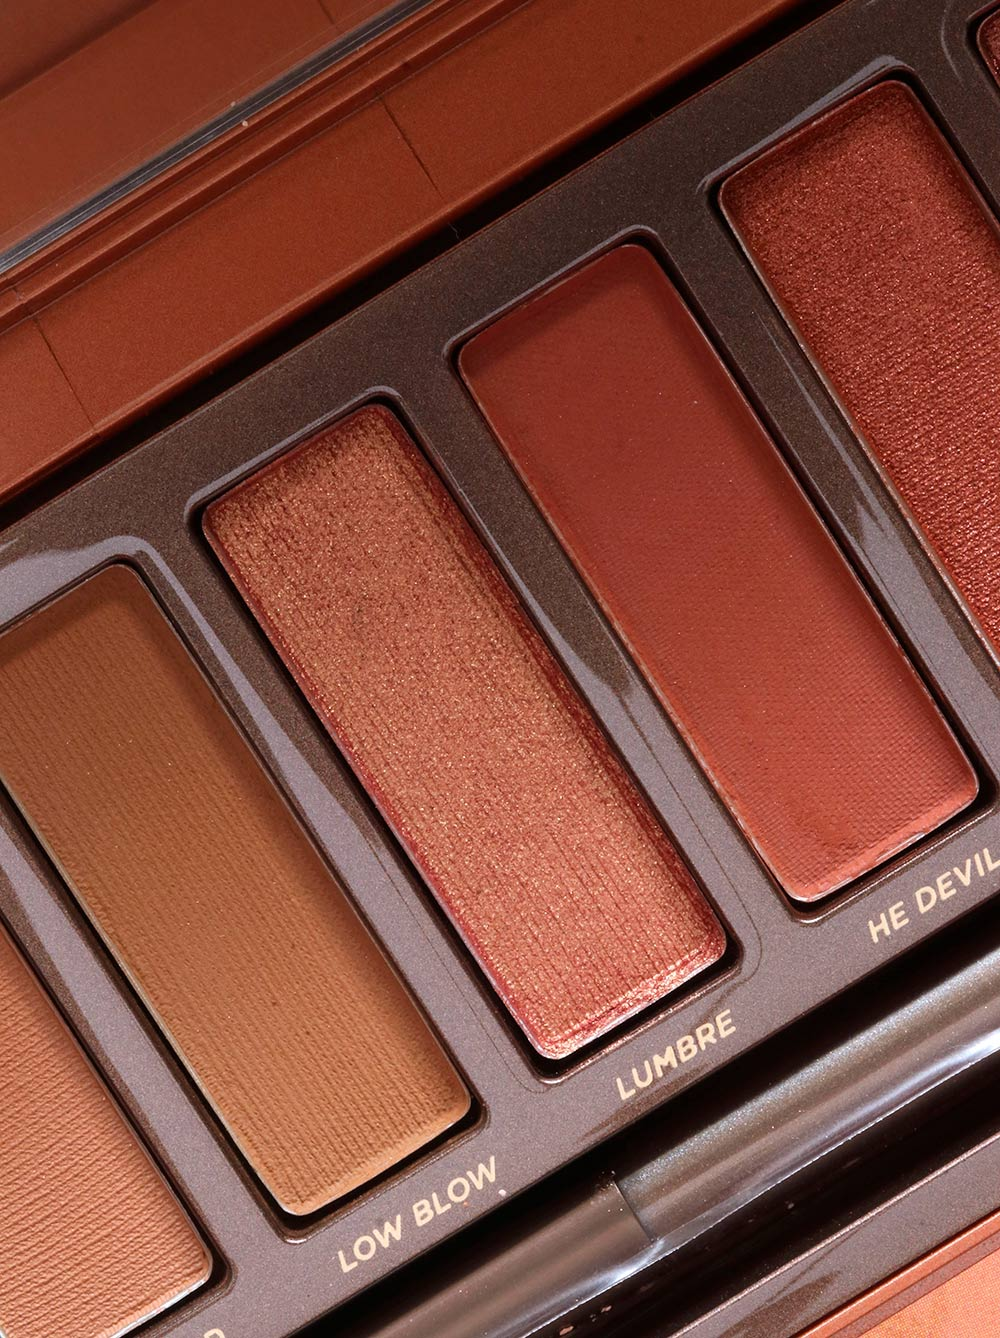 Urban Decay Naked Heat Palette | Ginger Girl Says | A